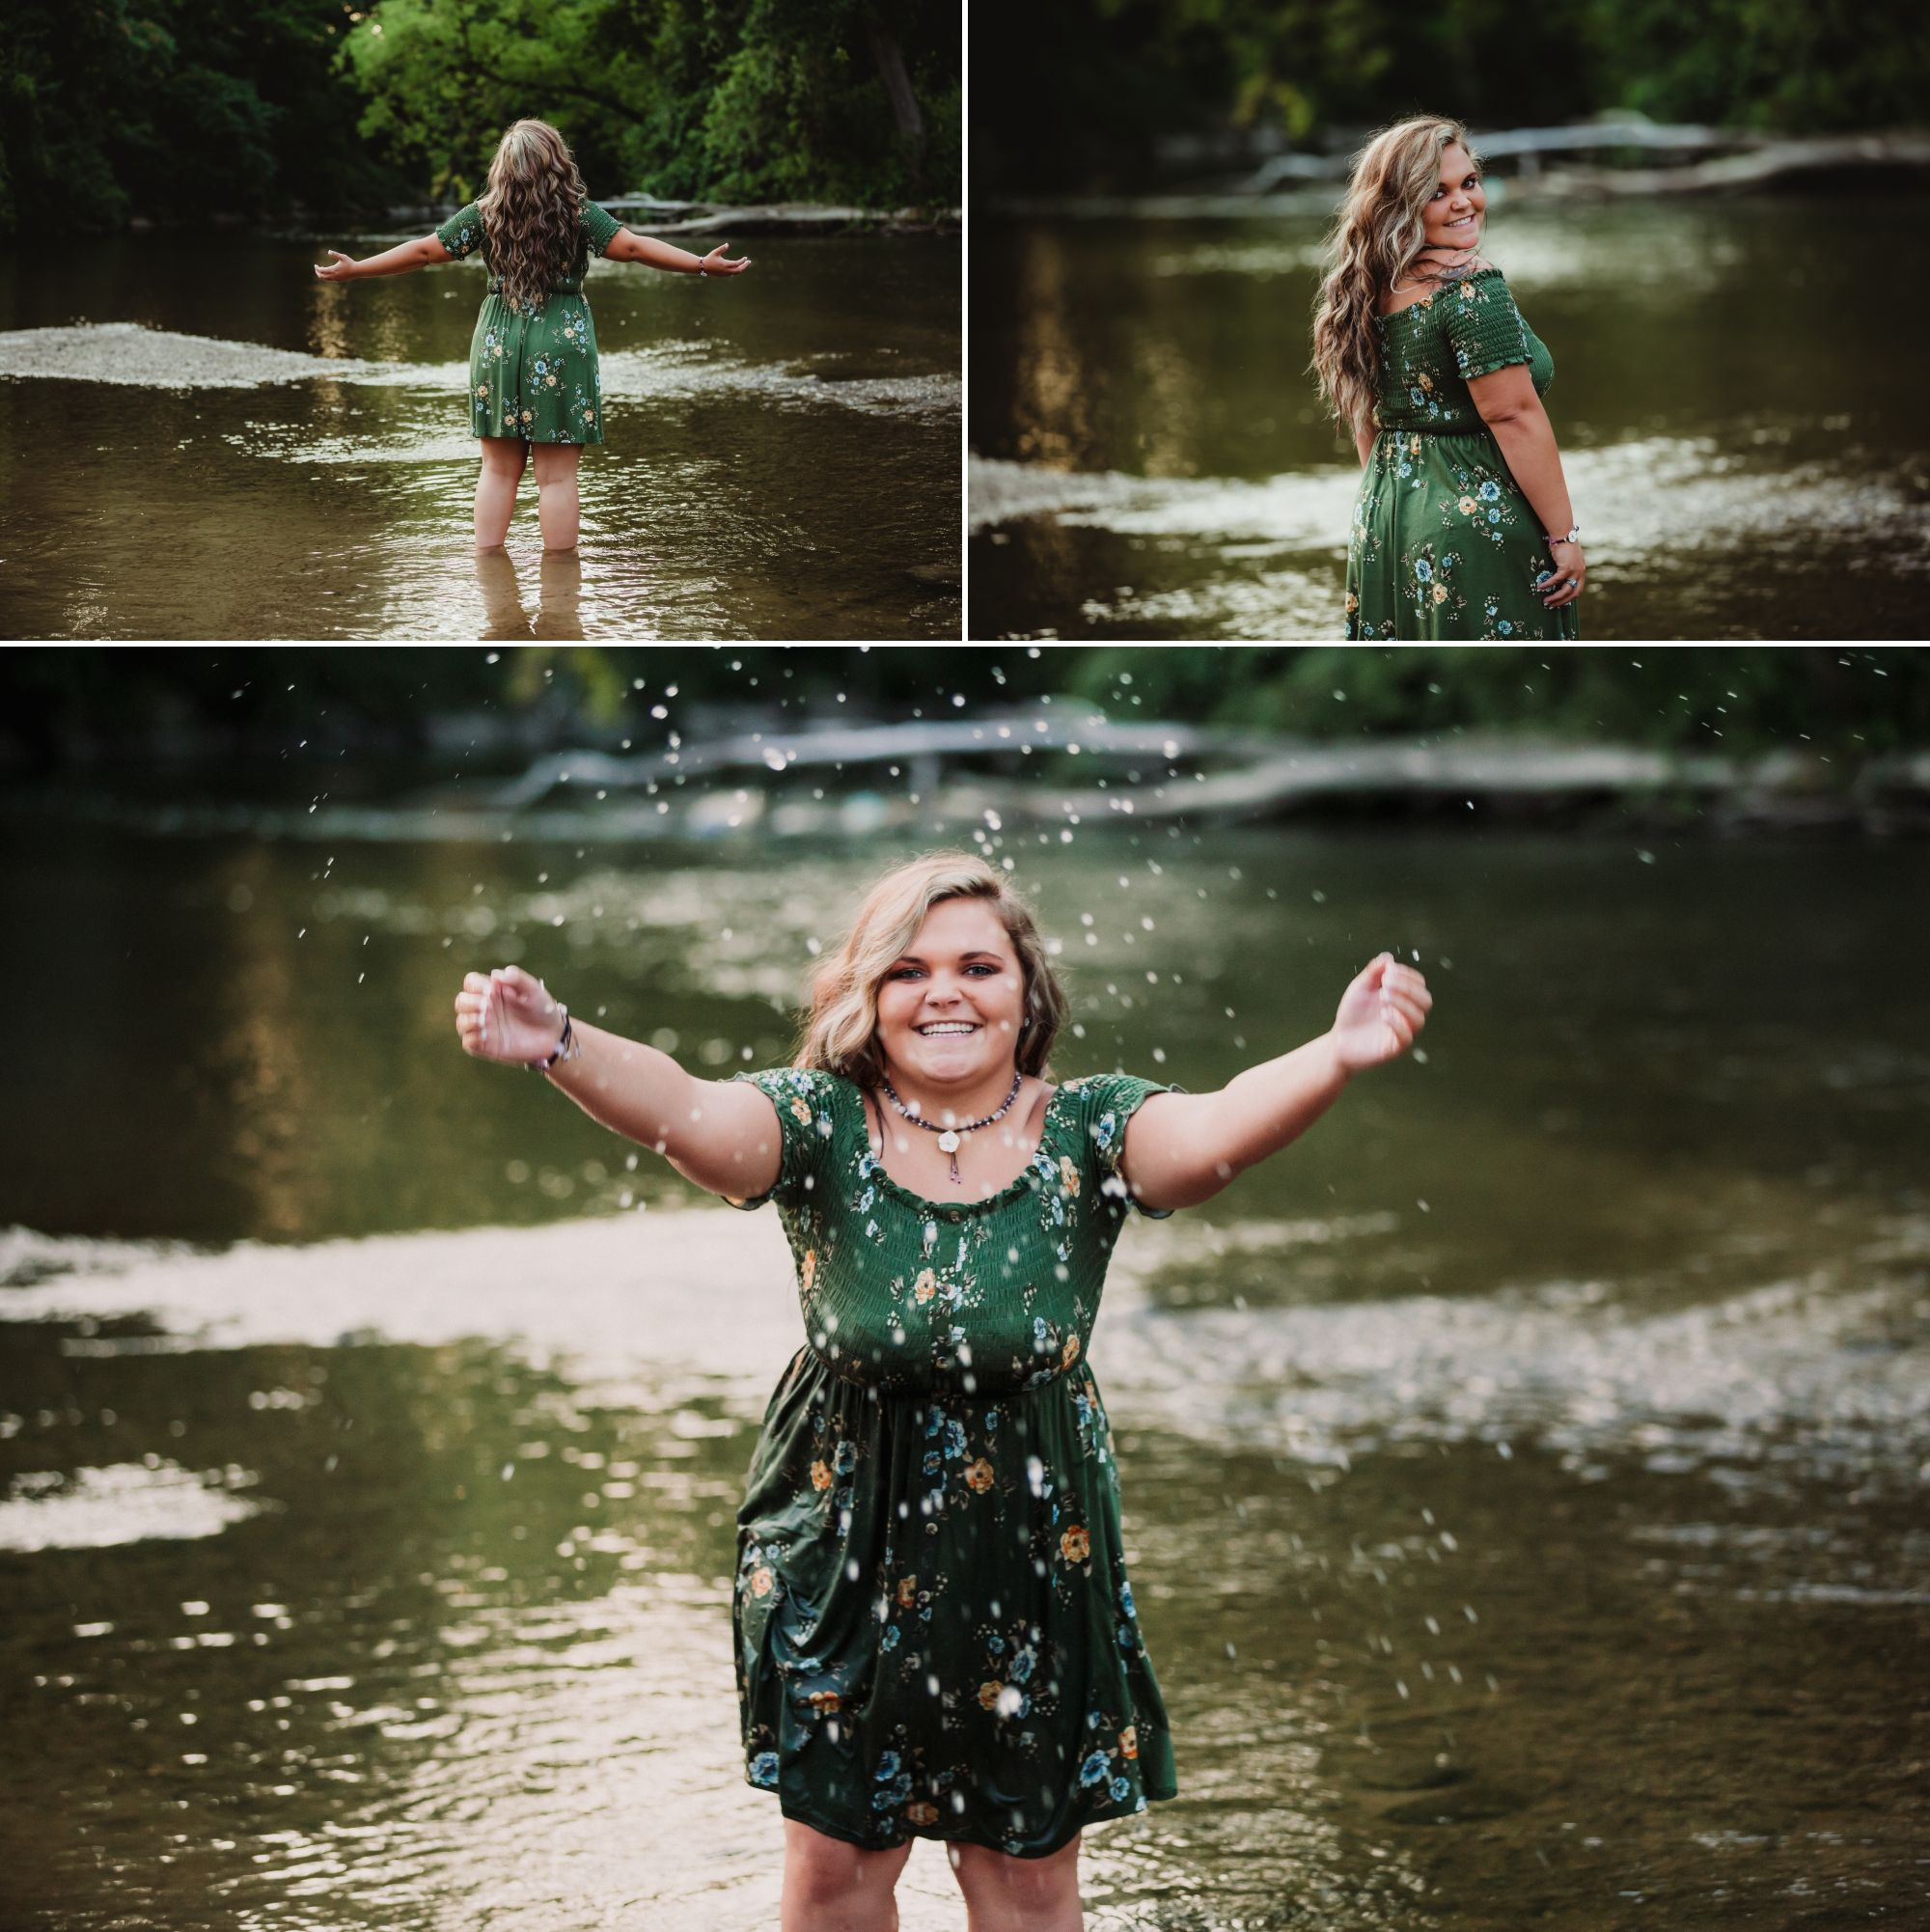 High school senior girl standing in a river and splashing.